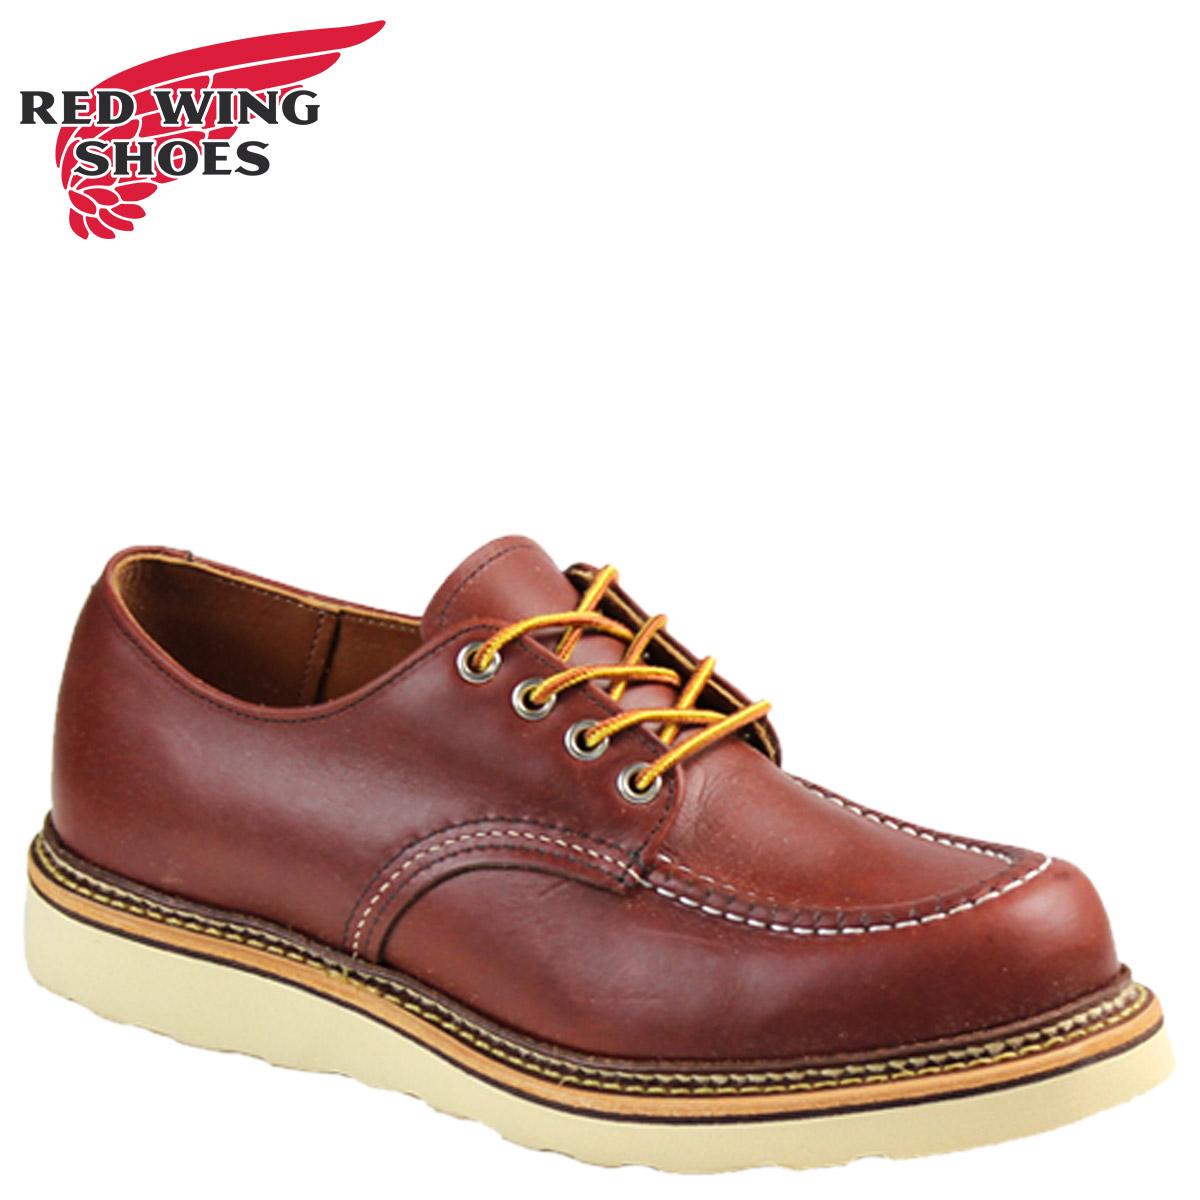 SneaK Online Shop | Rakuten Global Market: Redwing RED WING shoes ...